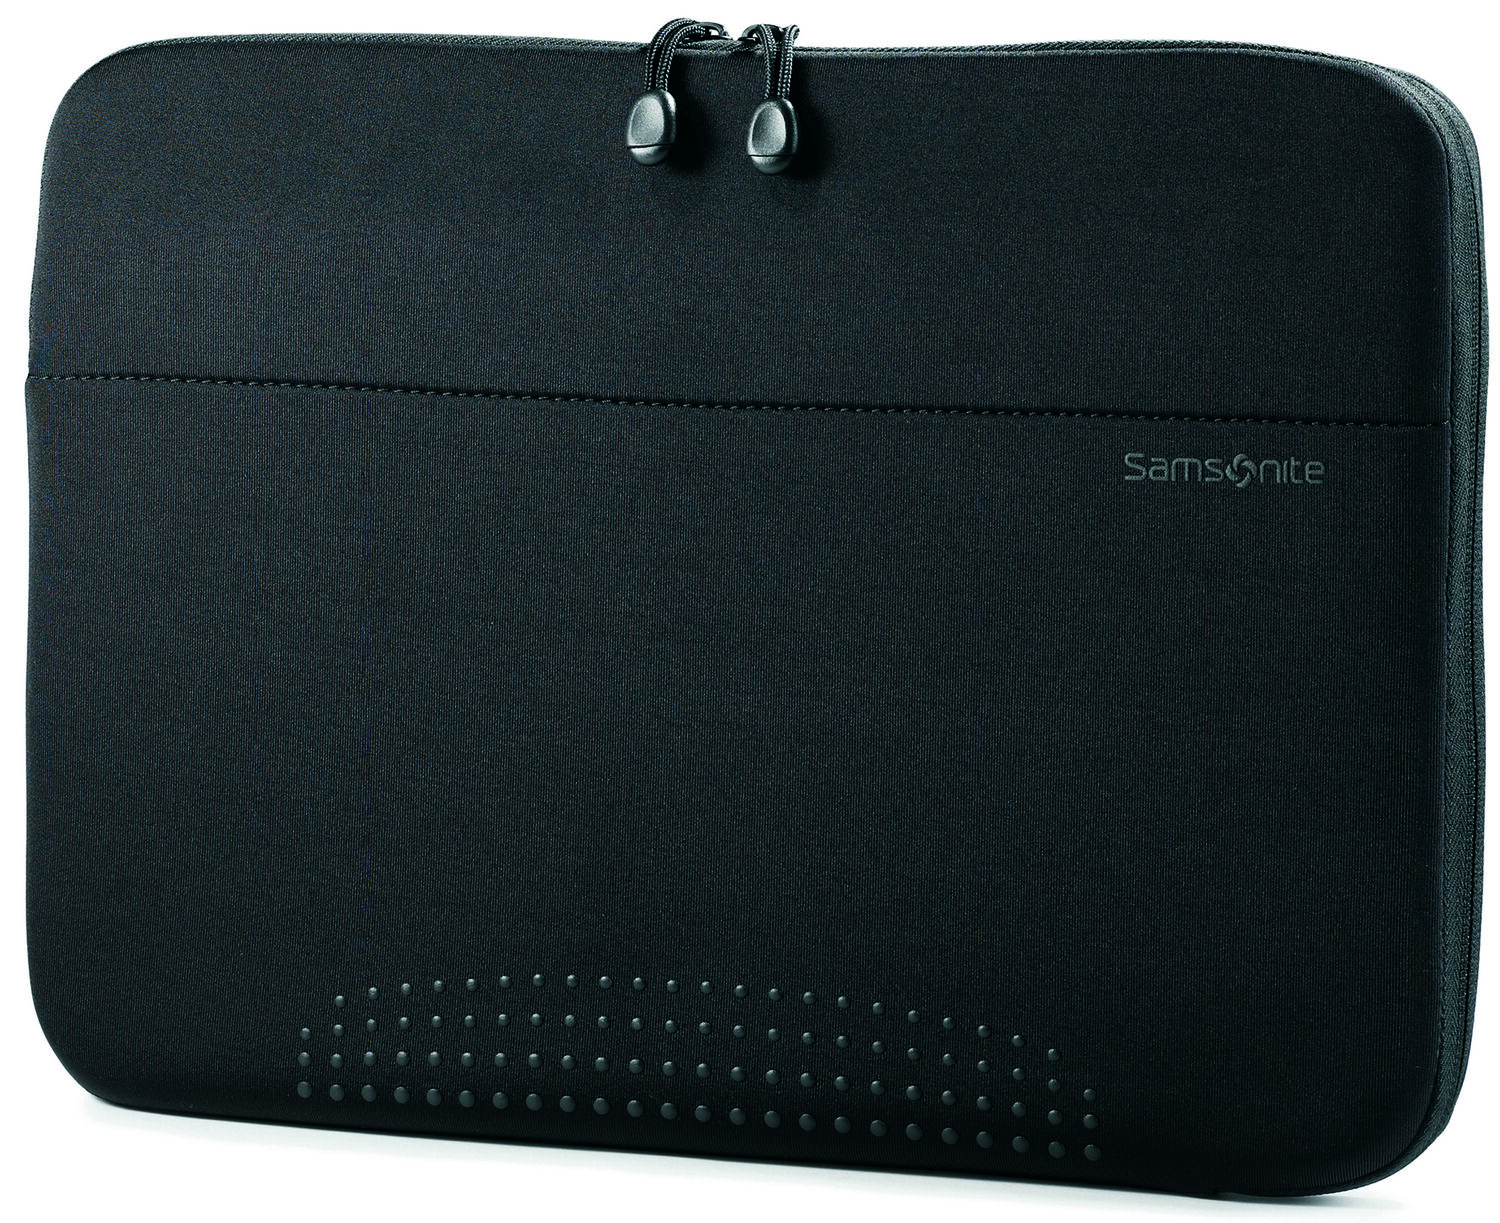 Samsonite Aramon NXT 15.6 Laptop Sleeve